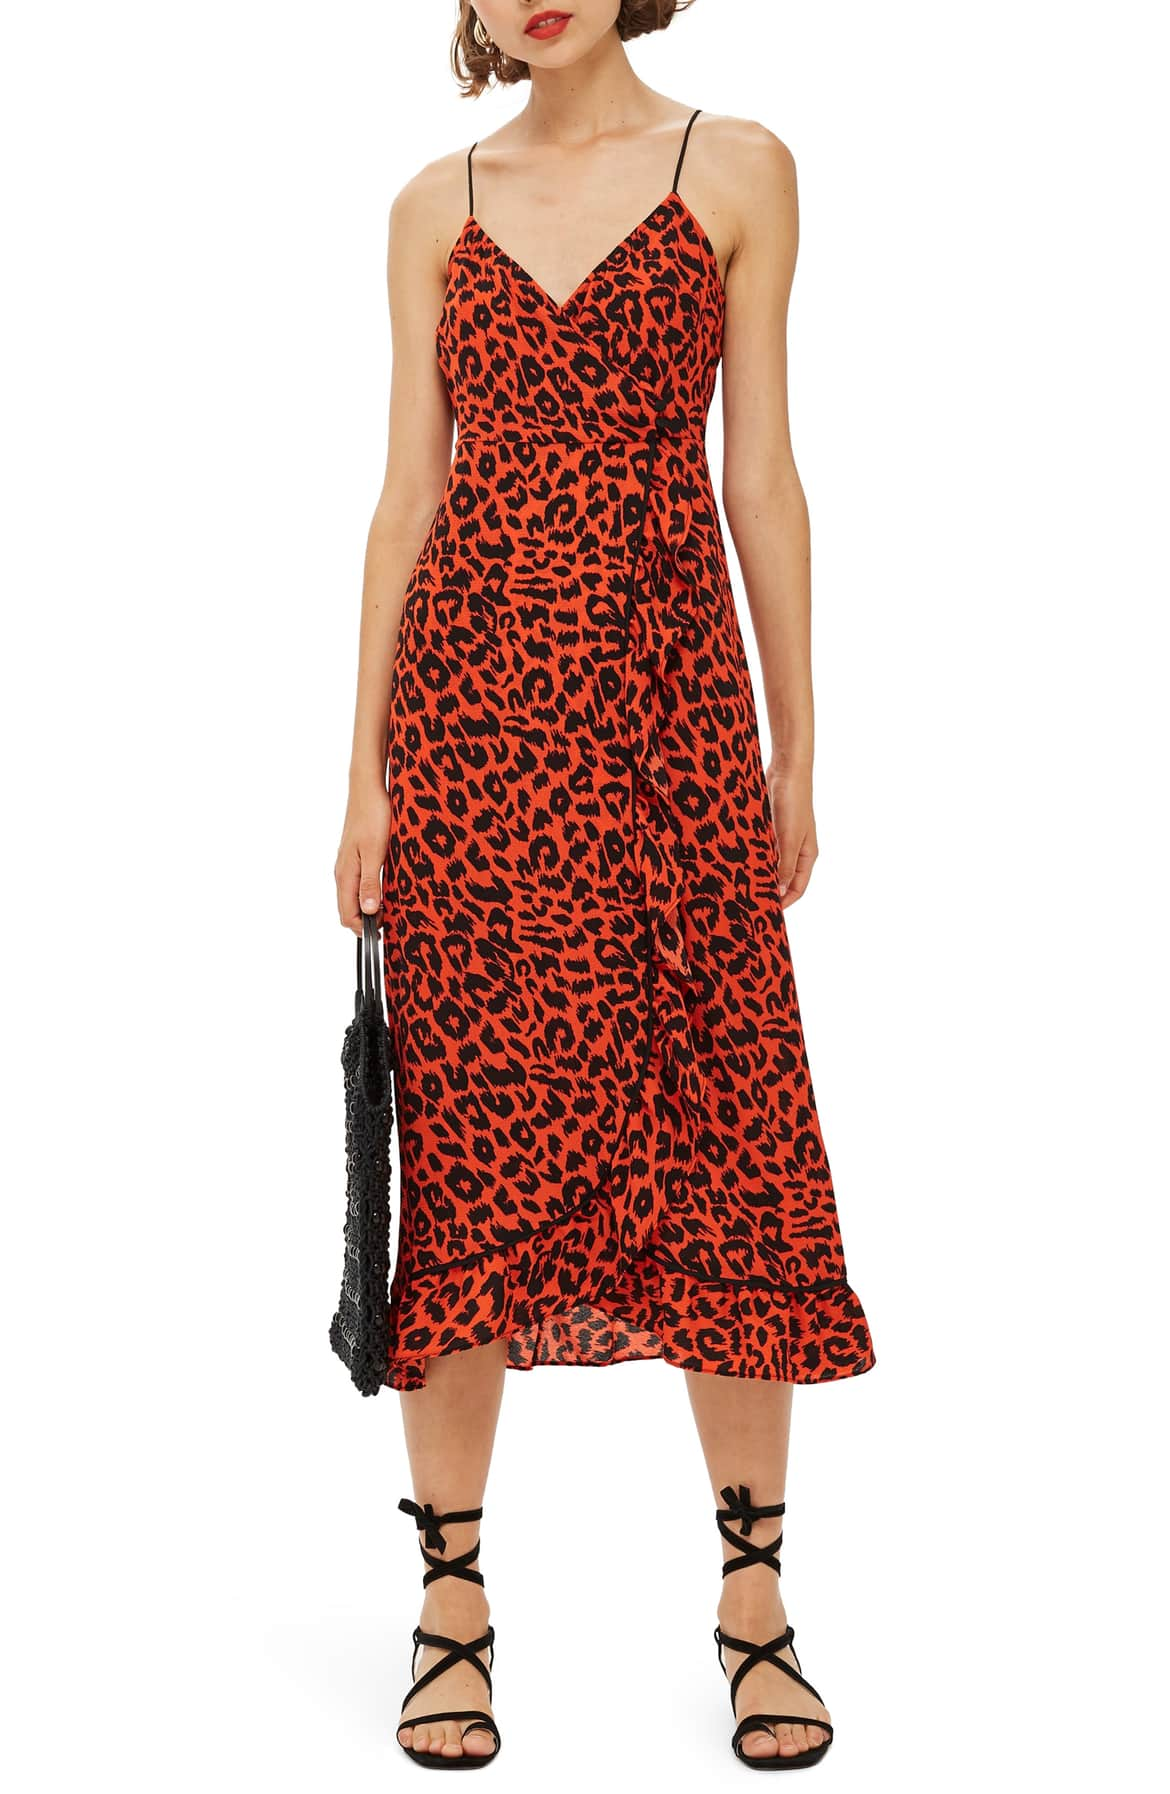 <p>Chic animal print emboldens a breezy slipdress styled with slinky straps and light ruffles fluttering down the front. $75. (Image: Nordstrom){&nbsp;}</p><p></p>